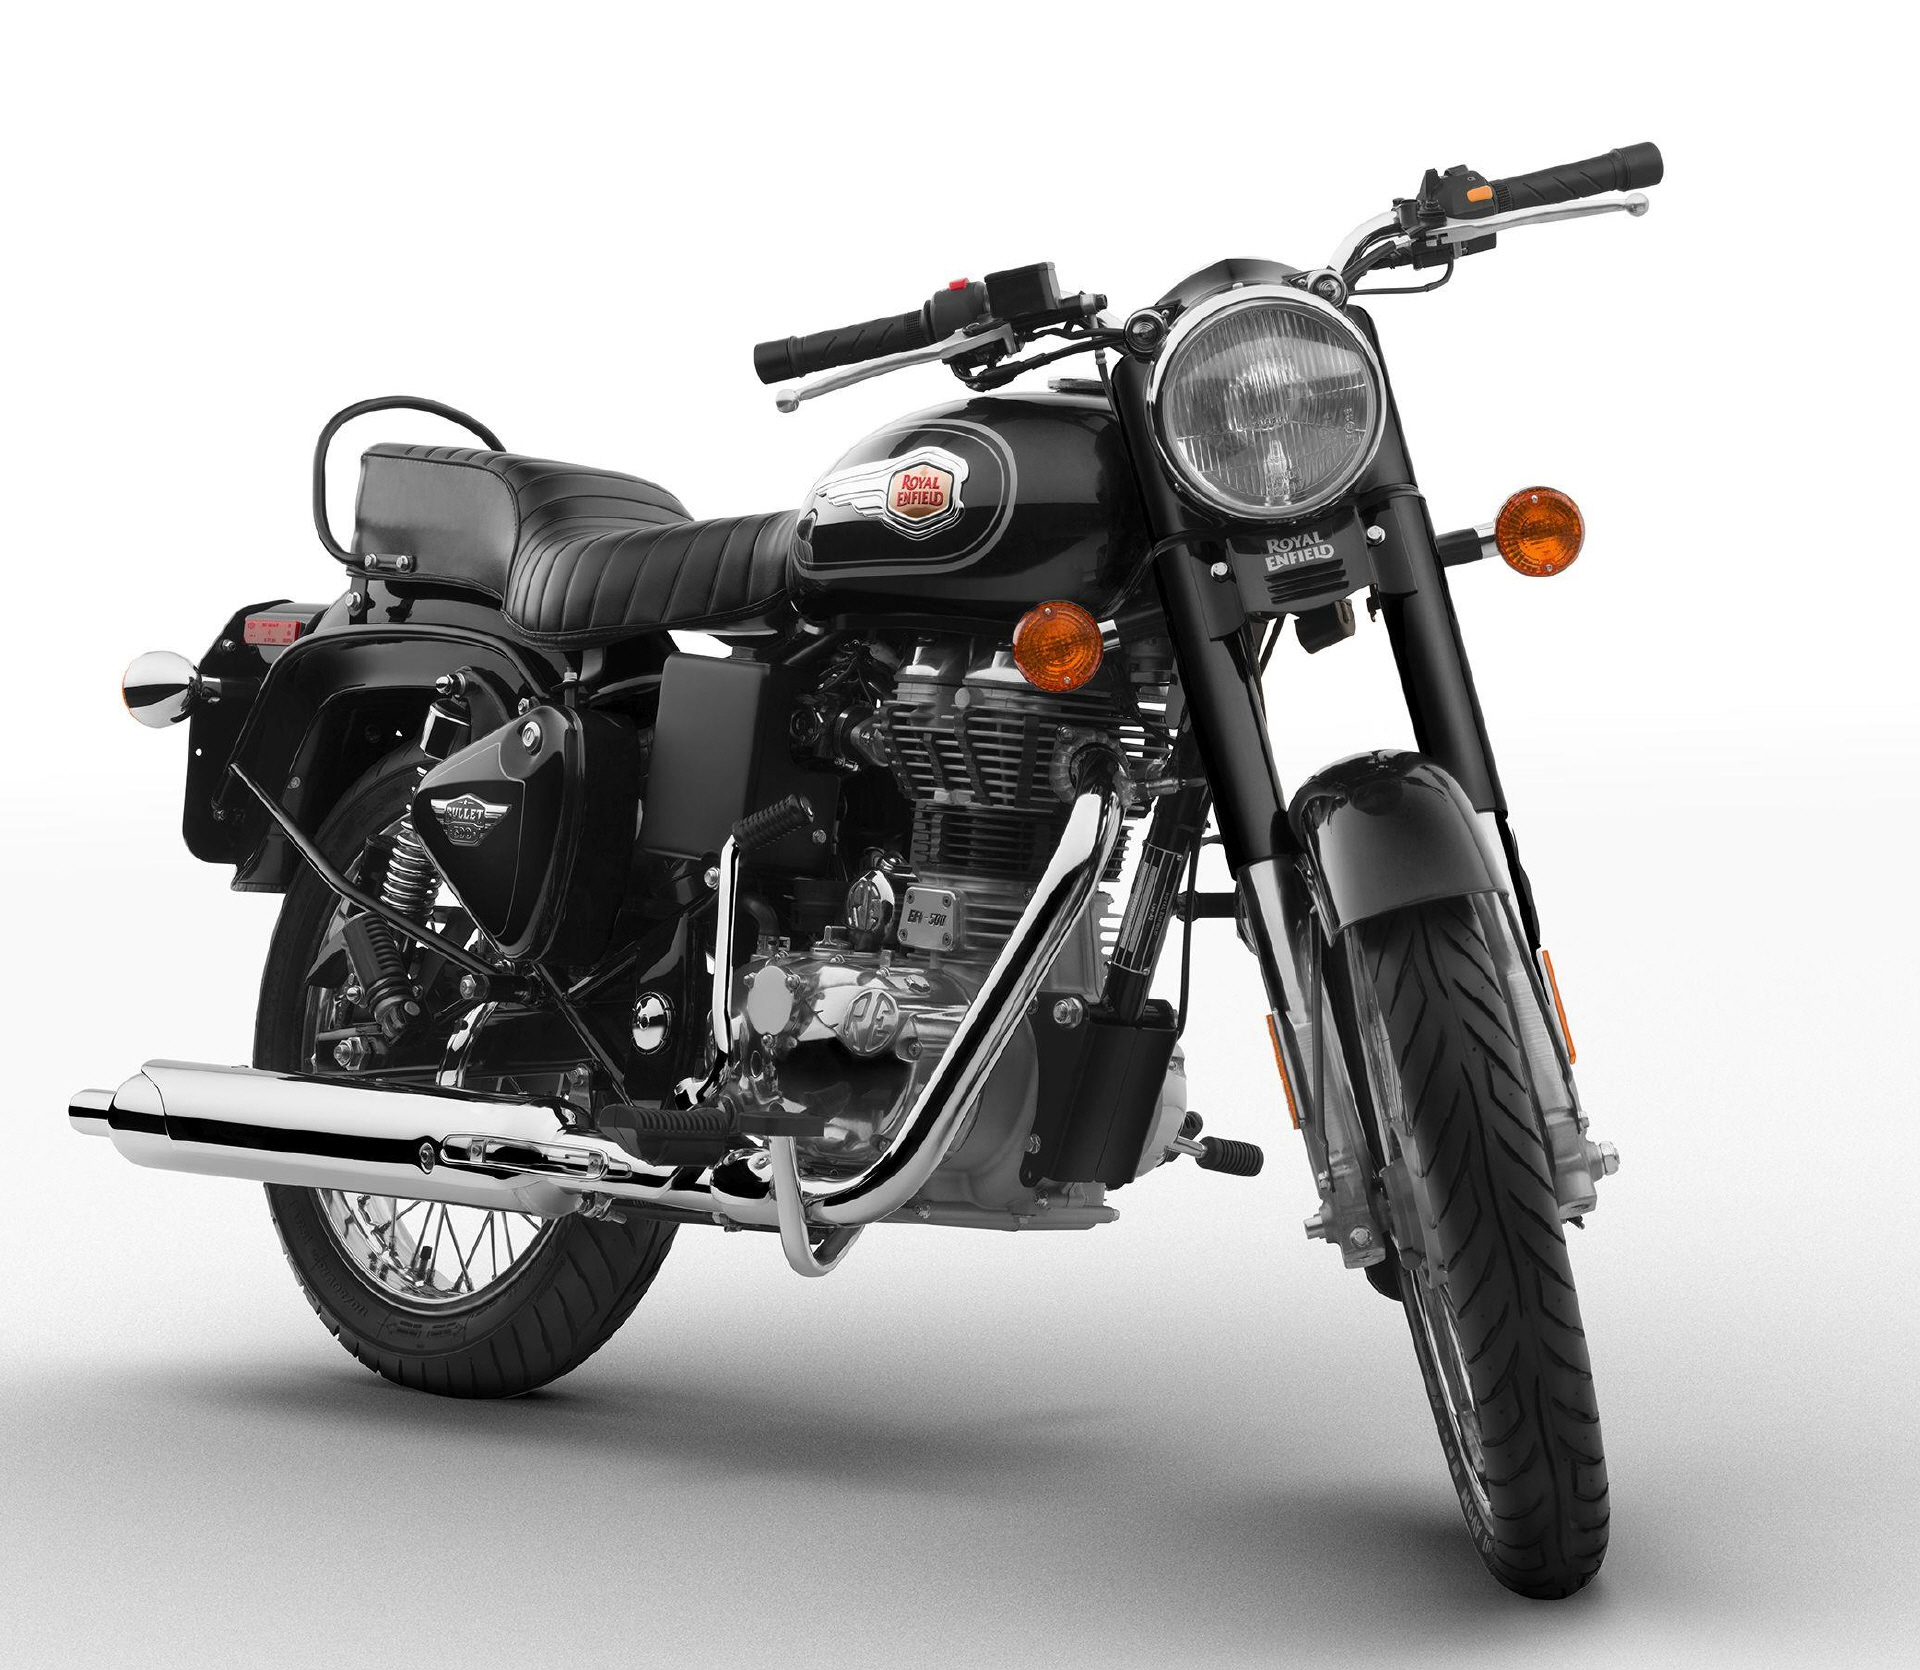 royalenfield_bullet_black_02jpg